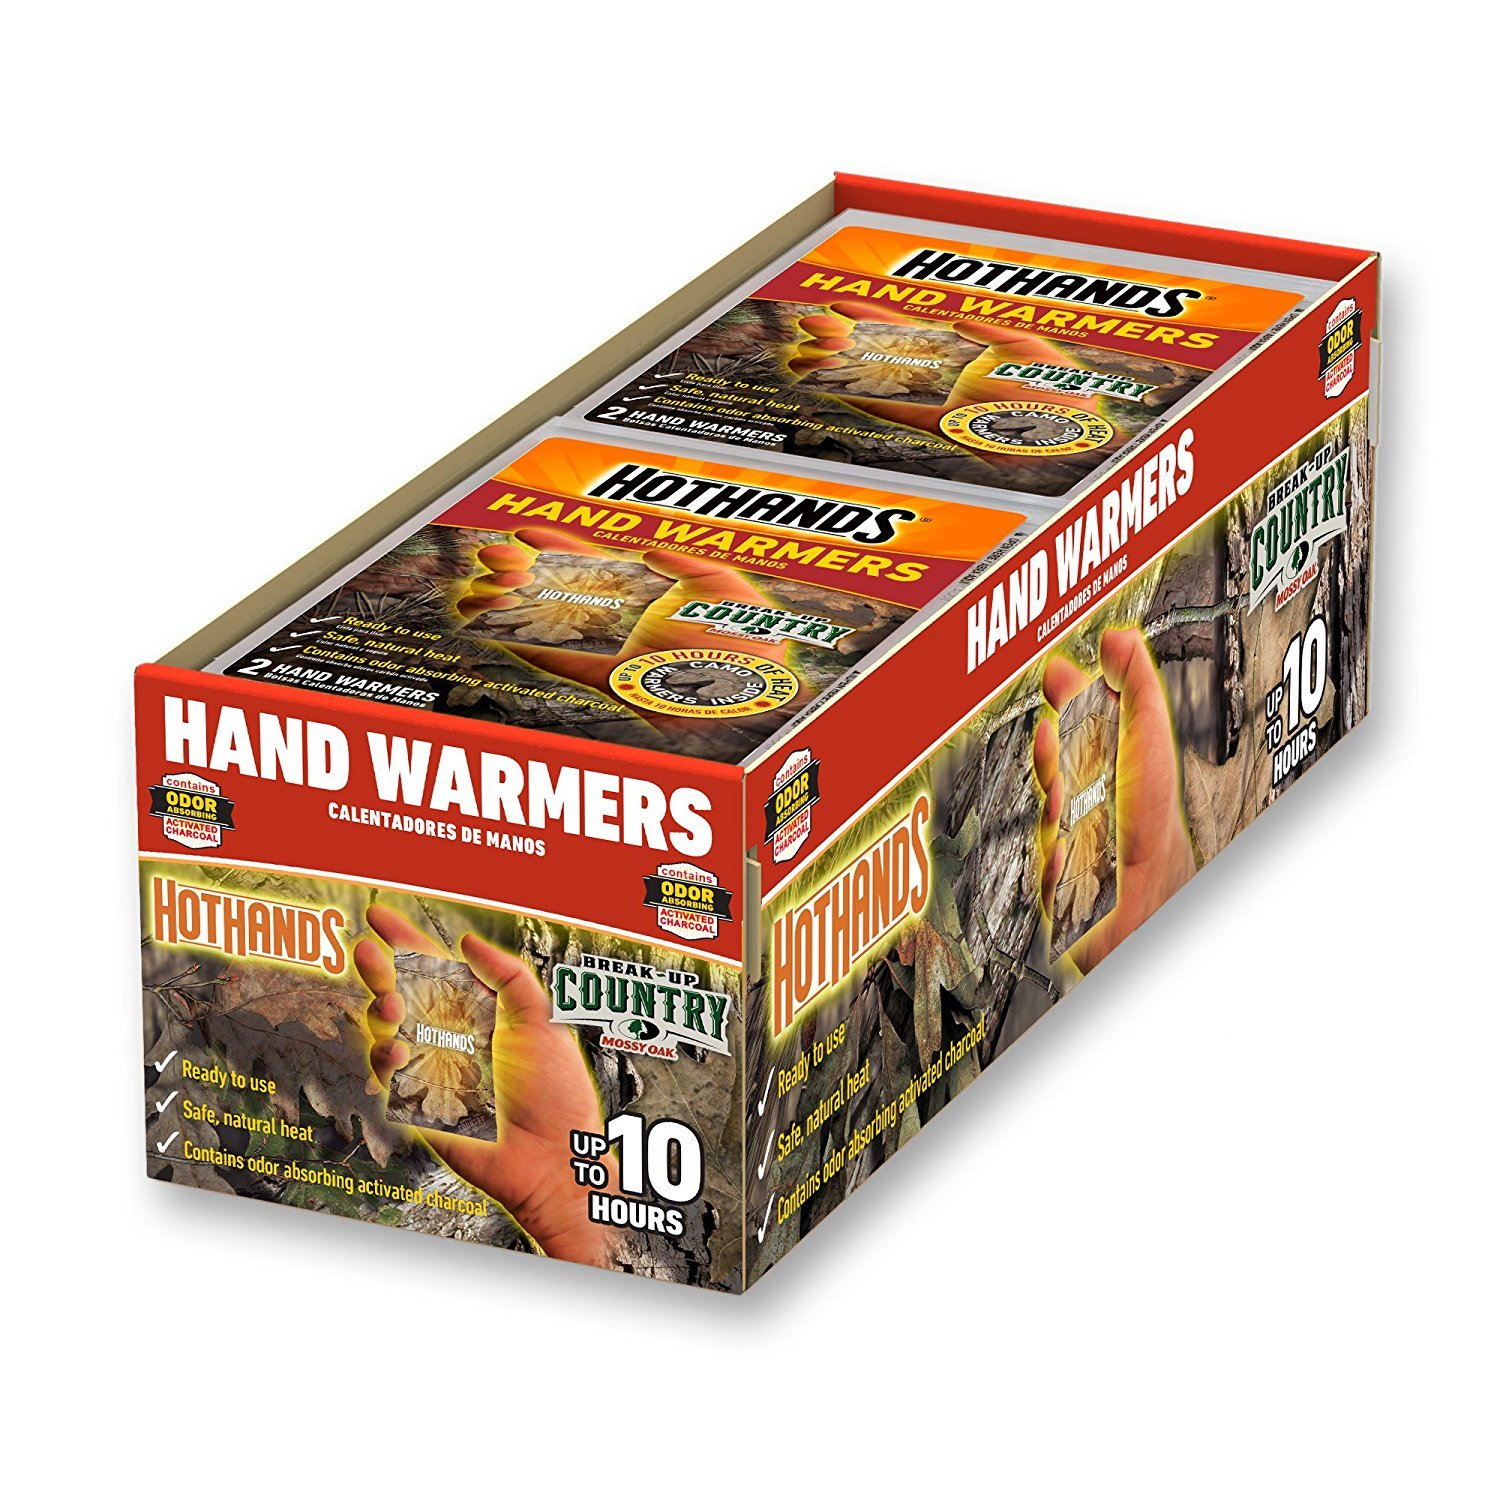 HotHands Mossy Oak Camo Hand warmers - 15 Pair by HotHands